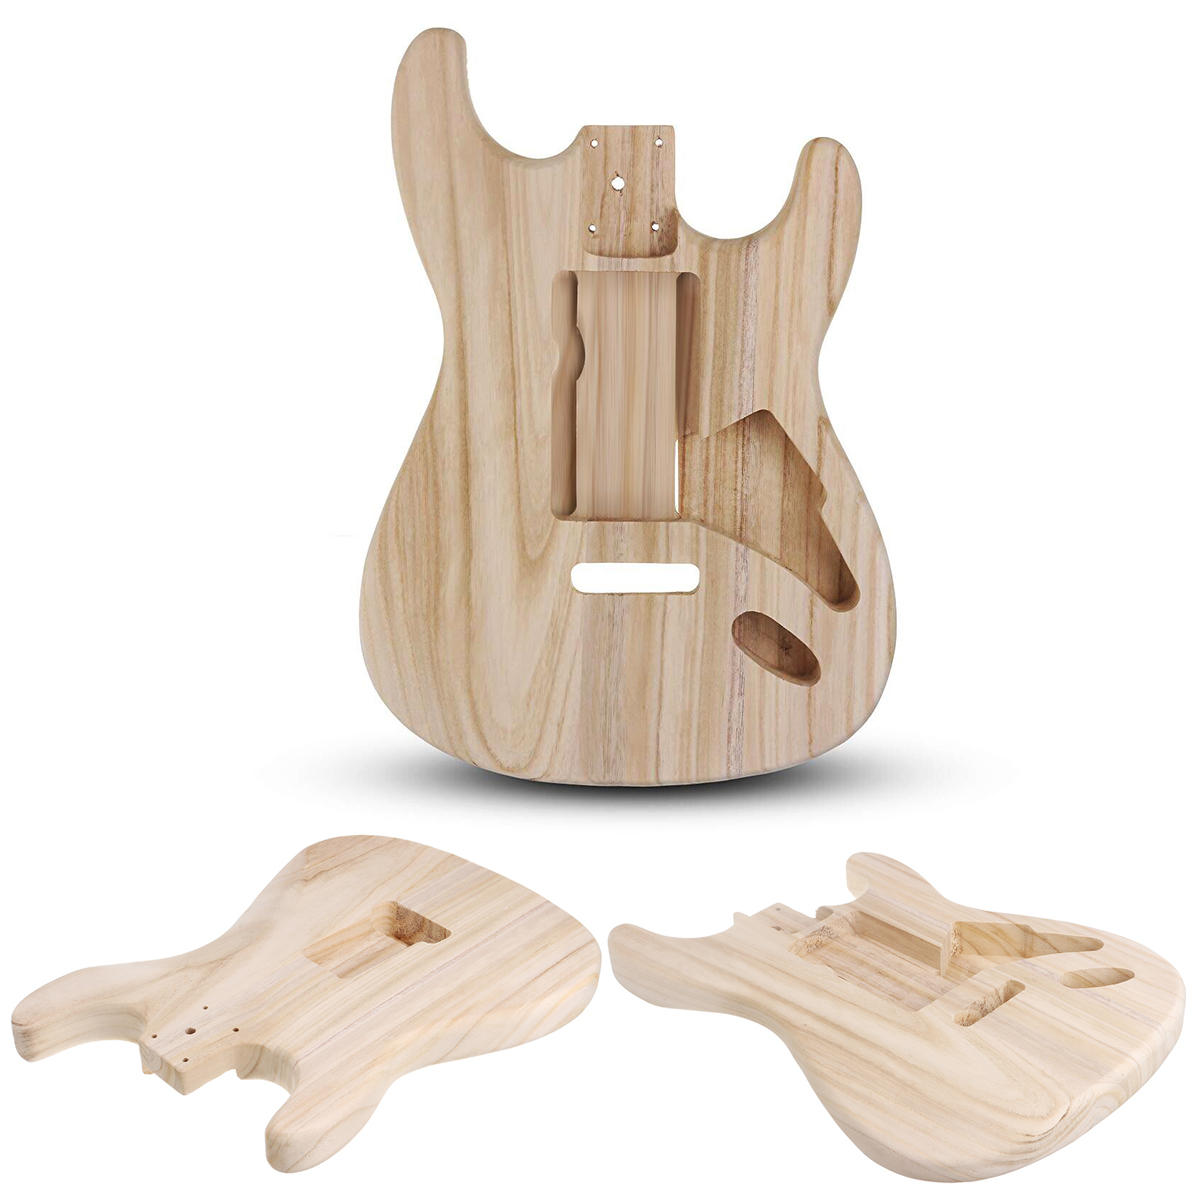 DIY Polished Maple Wood Type ST Electric Guitar Barrel Body for Guitar Replace Parts - 12